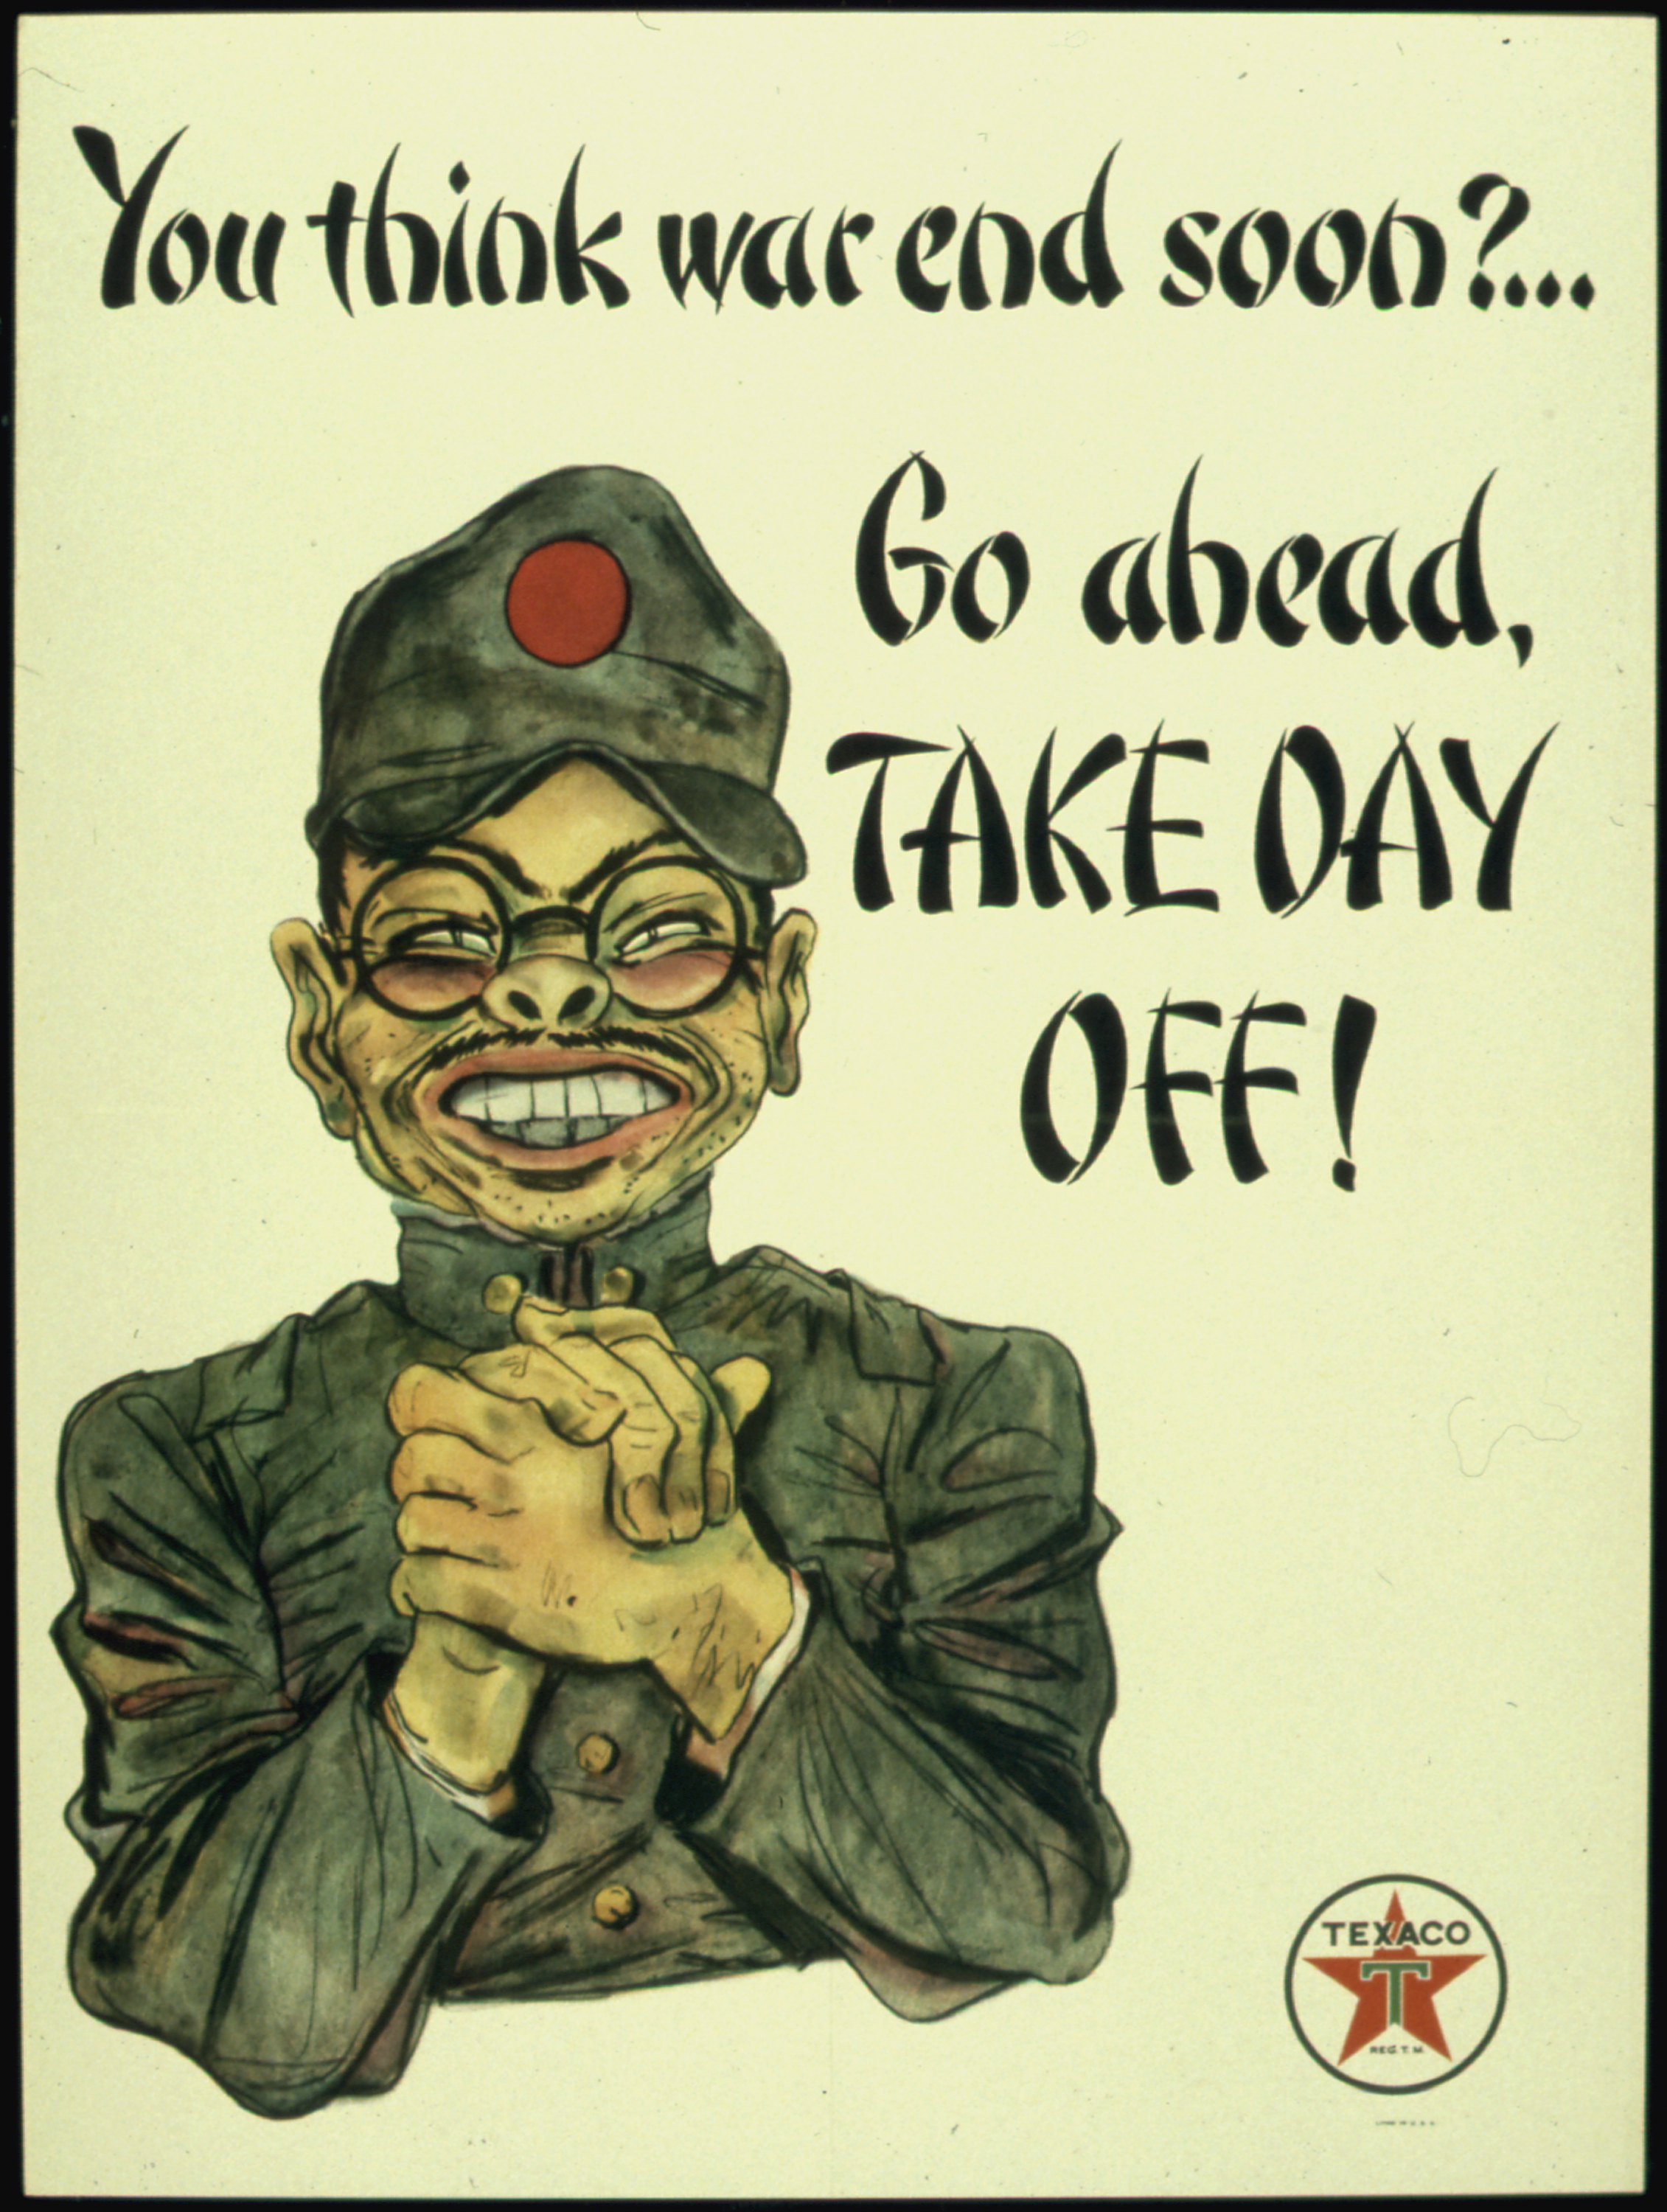 File Quot You Think War End Soon Go Ahead Take Day Off